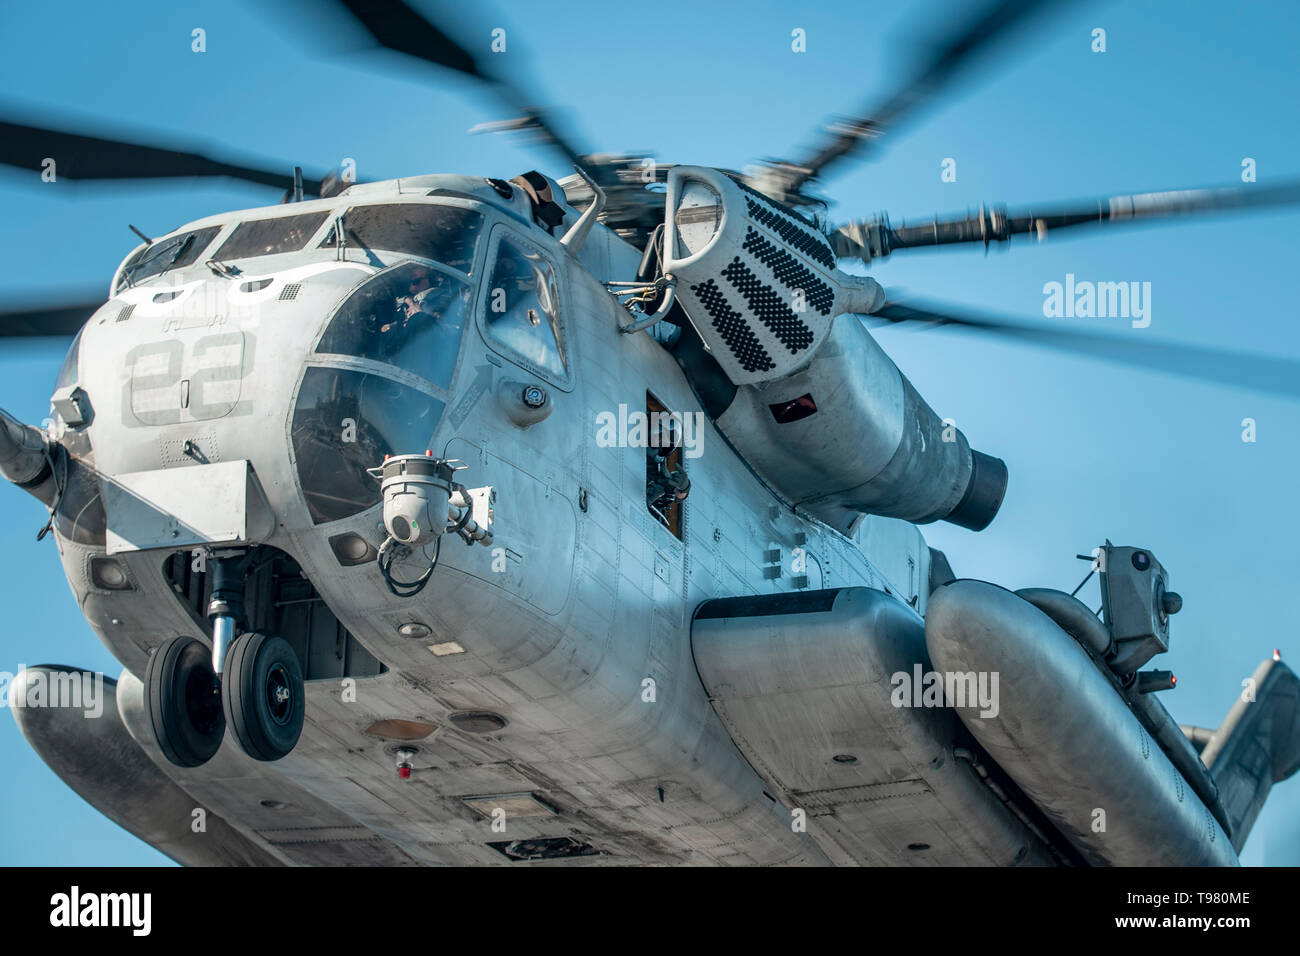 190511-M-HB658-0061 PACIFIC OCEAN (May 11, 2019) A U.S. Marine Corps CH-53E with Marine Medium Tiltrotor Squadron (VMM) 163 (Reinforced), 11th Marine Expeditionary Unit (MEU), takes off during flight operations. The Marines and Sailors of the 11th MEU are conducting routine operations as part of the Boxer Amphibious Ready Group. (U.S. Marine Corps photos by Staff Sgt. Donald Holbert) - Stock Image